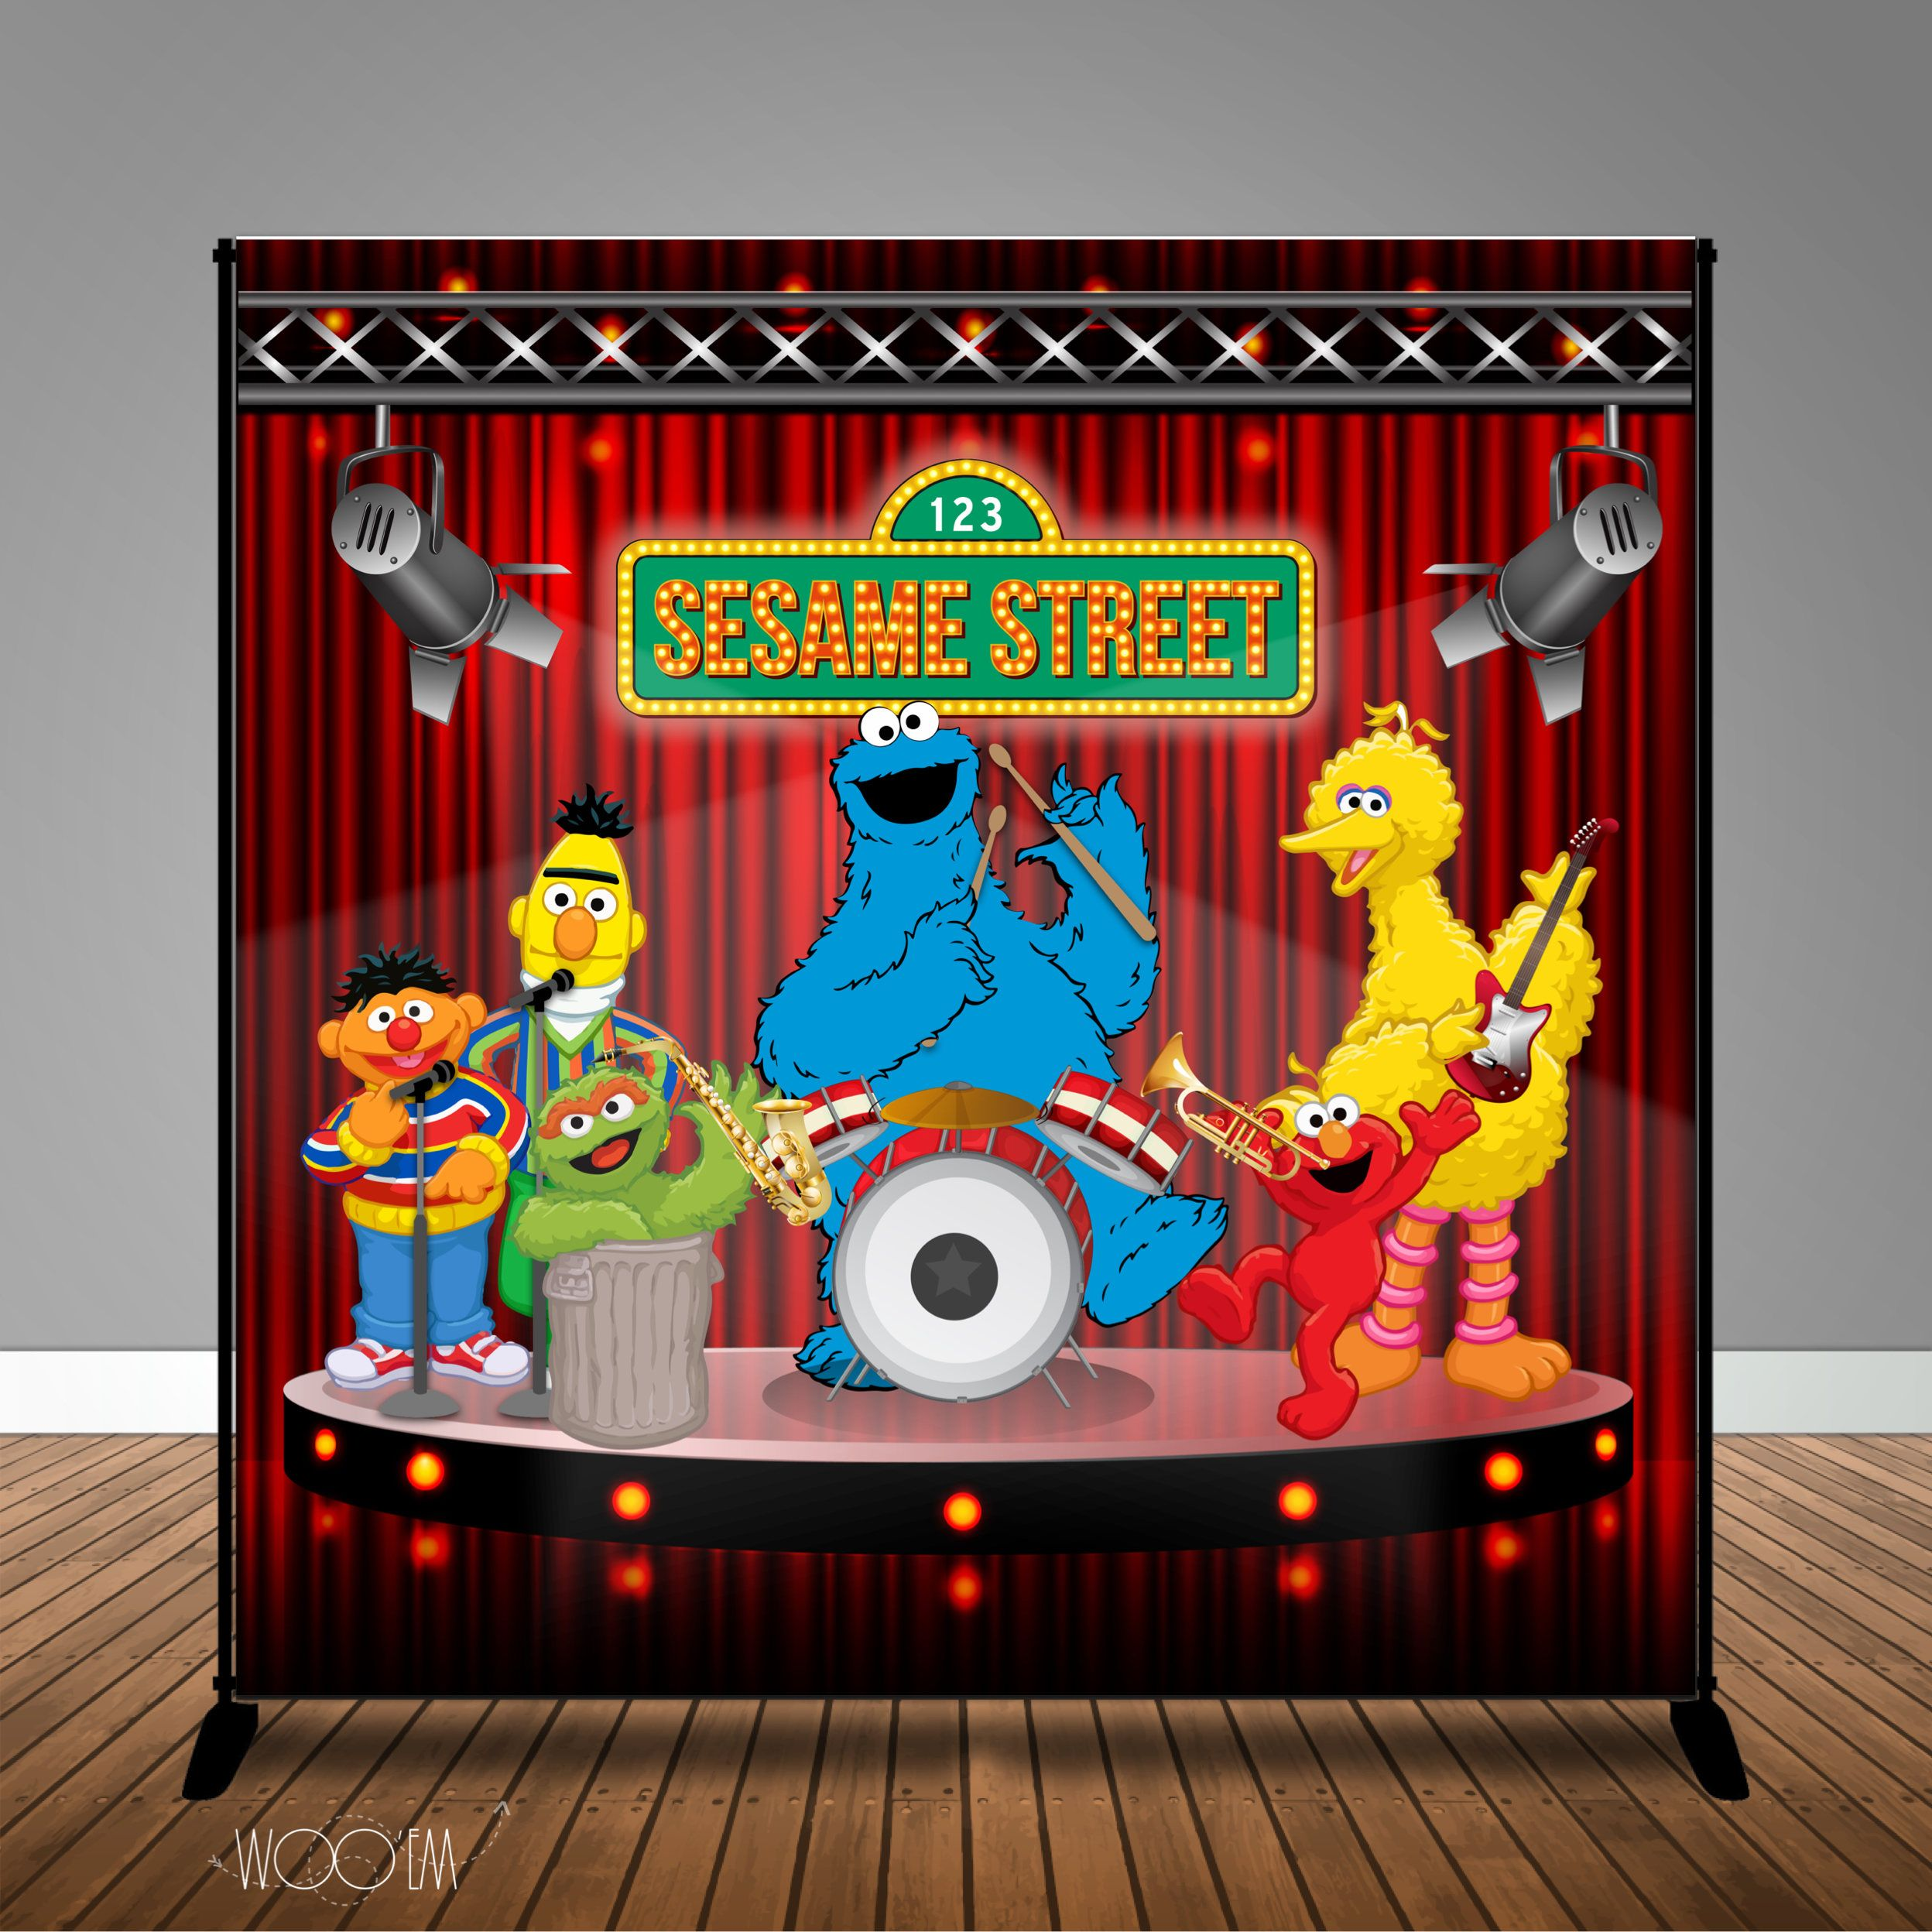 Sesame Street Band Birthday 8x8 Banner Backdrop Step Repeat Design Print And Ship